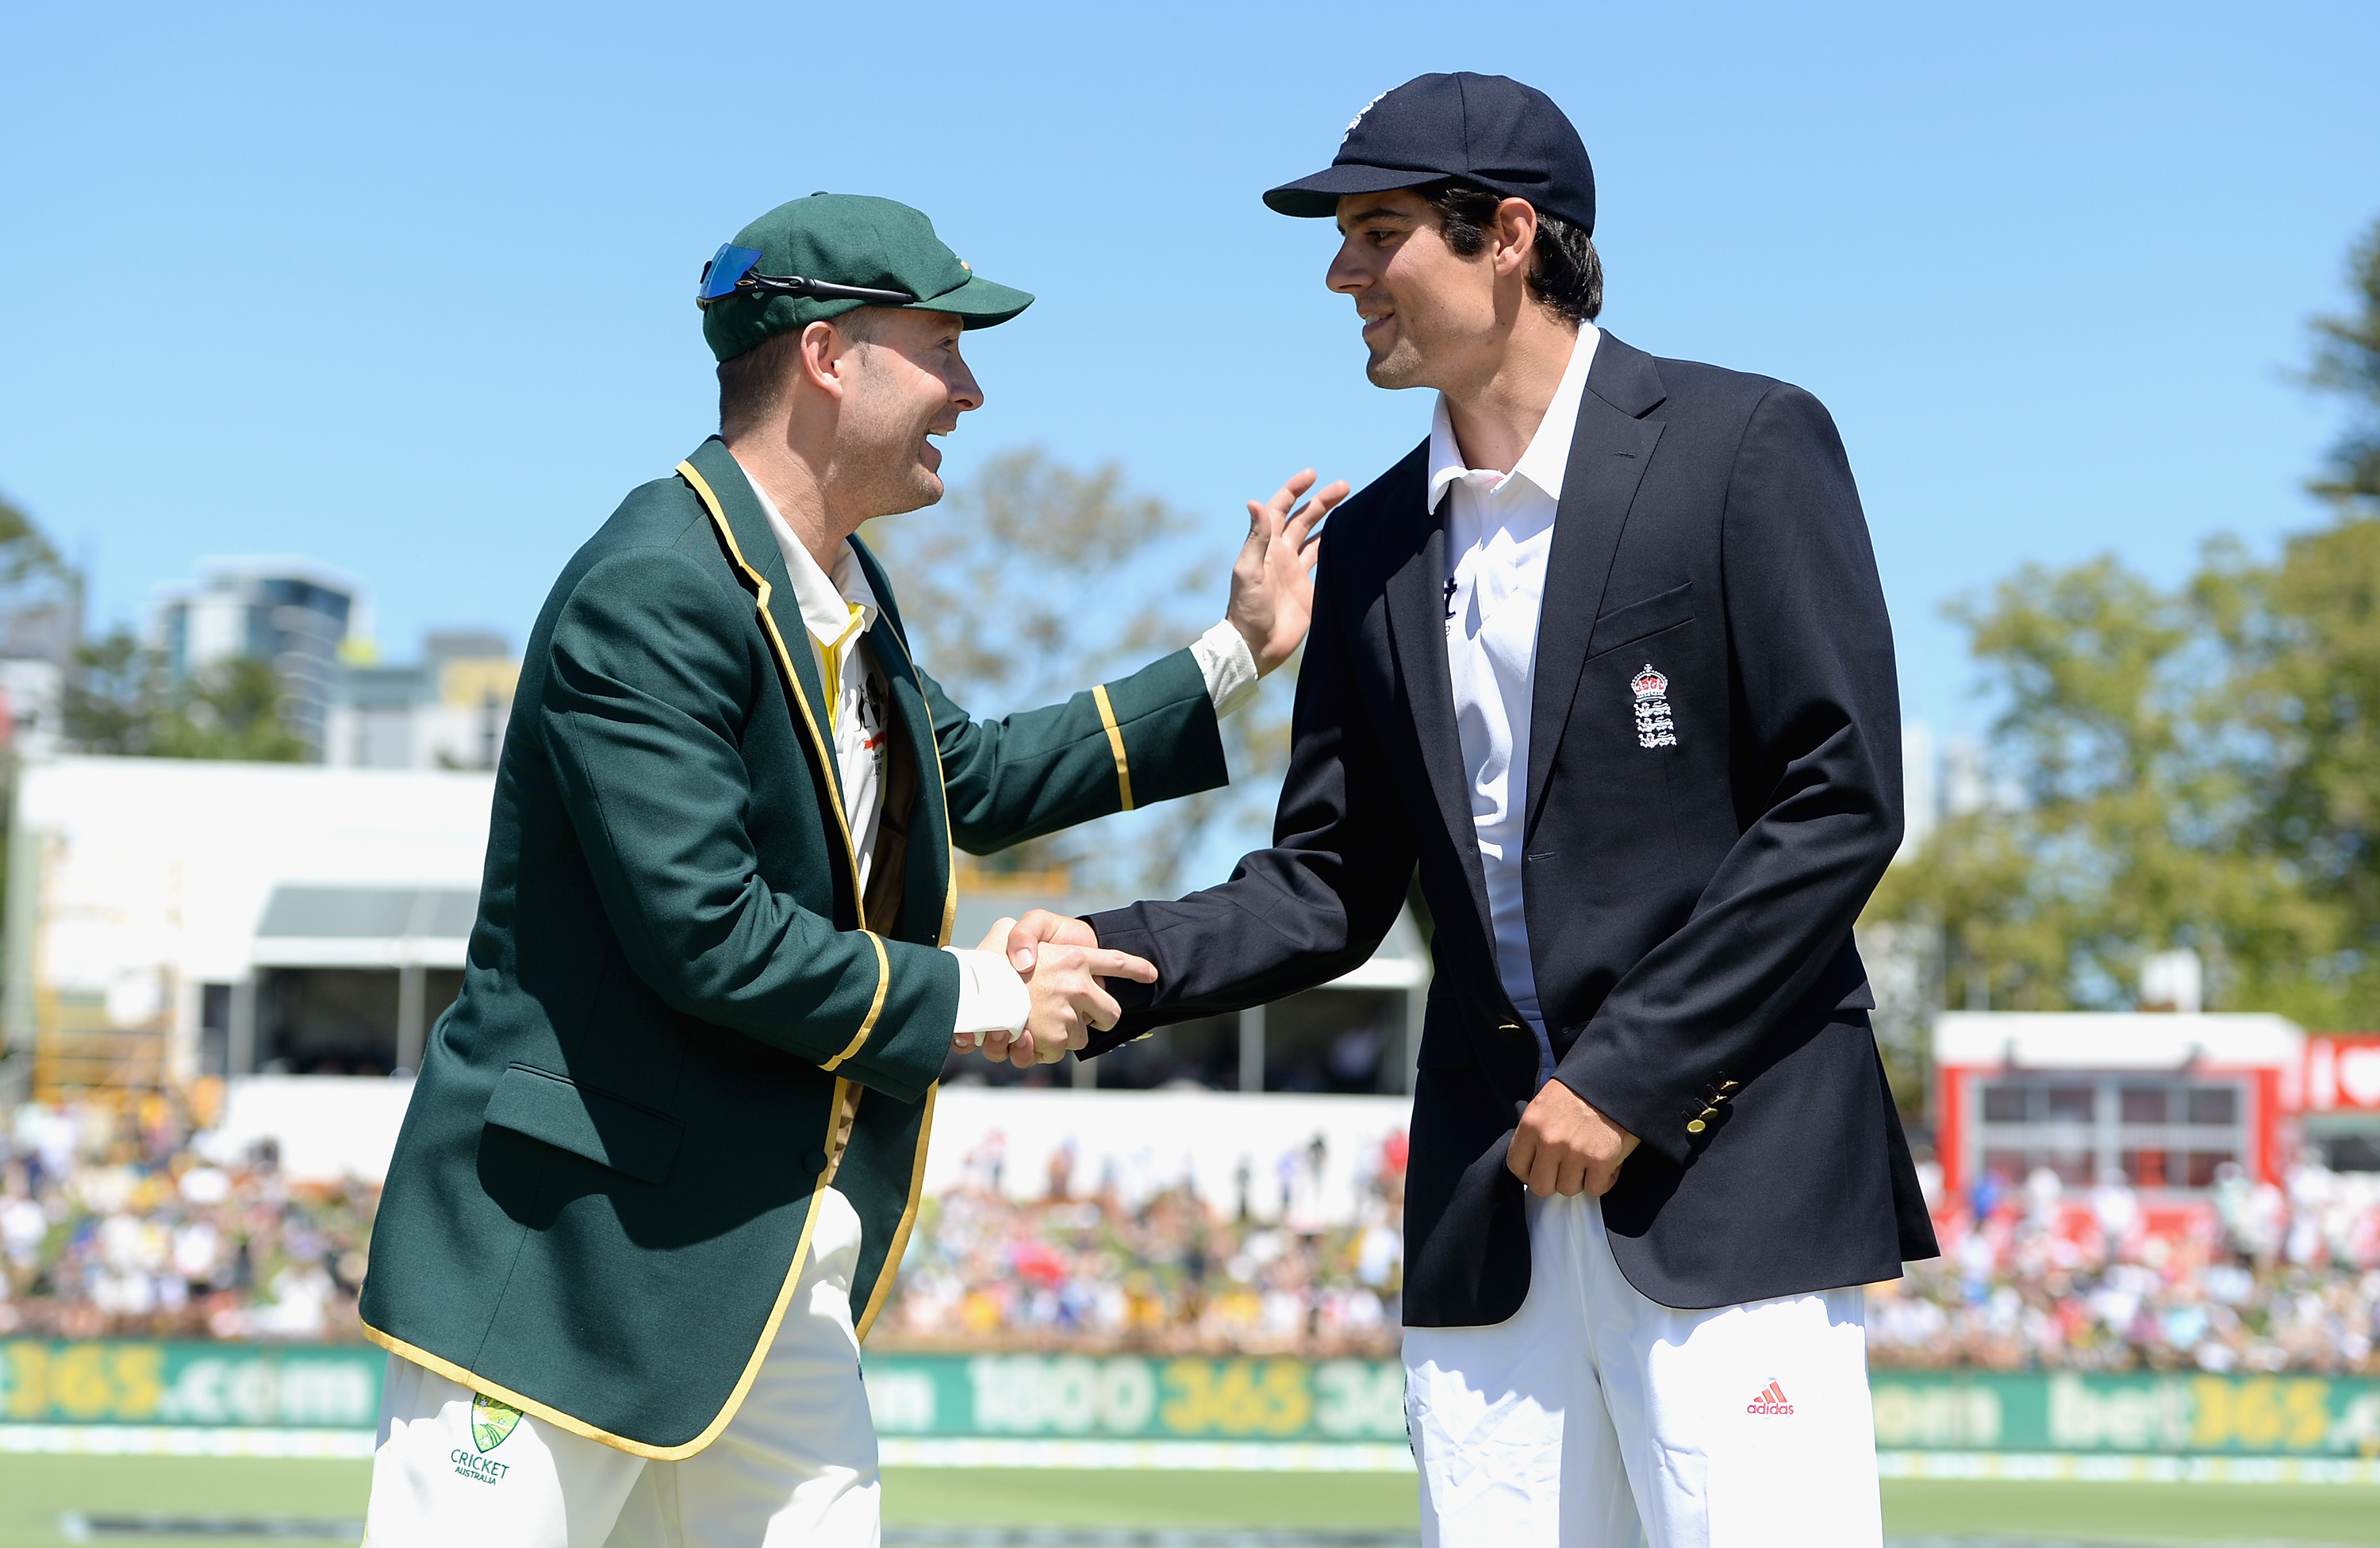 Michael Clarke and Alastair Cook | Getty